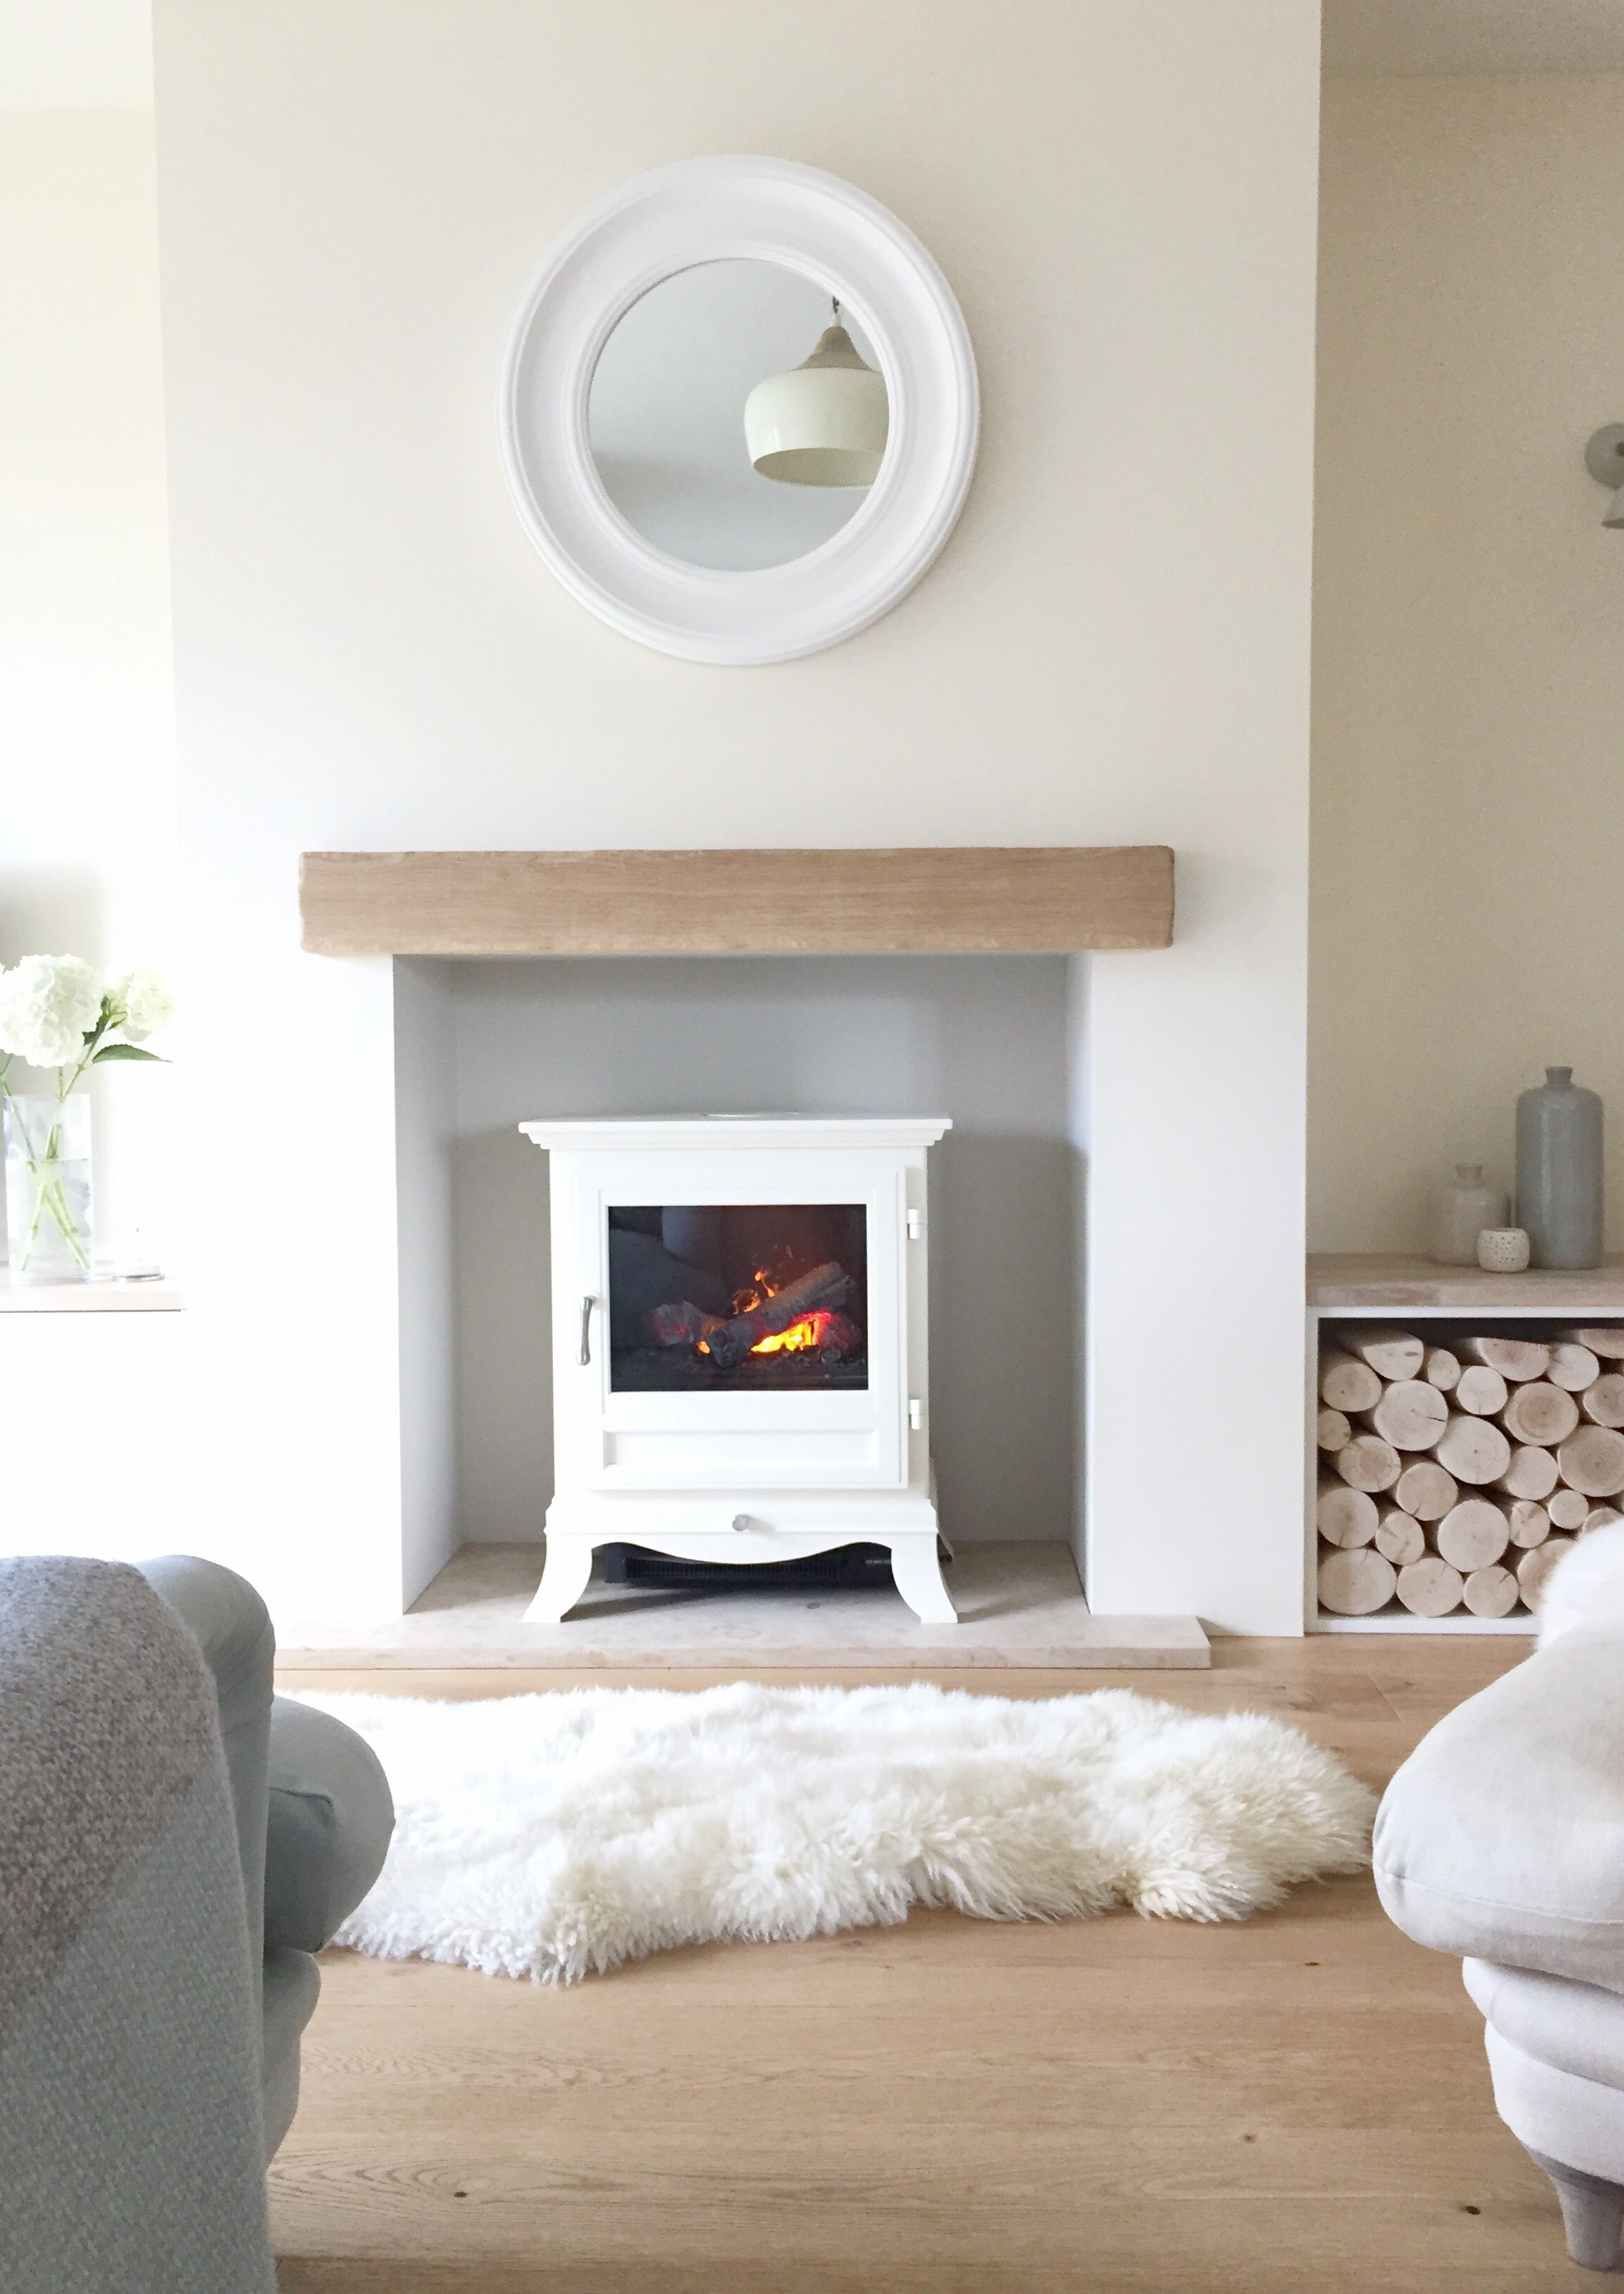 Living Room Ideas Log Burners log burner fireplace, cosy! #sheepskin rugs | home and interior